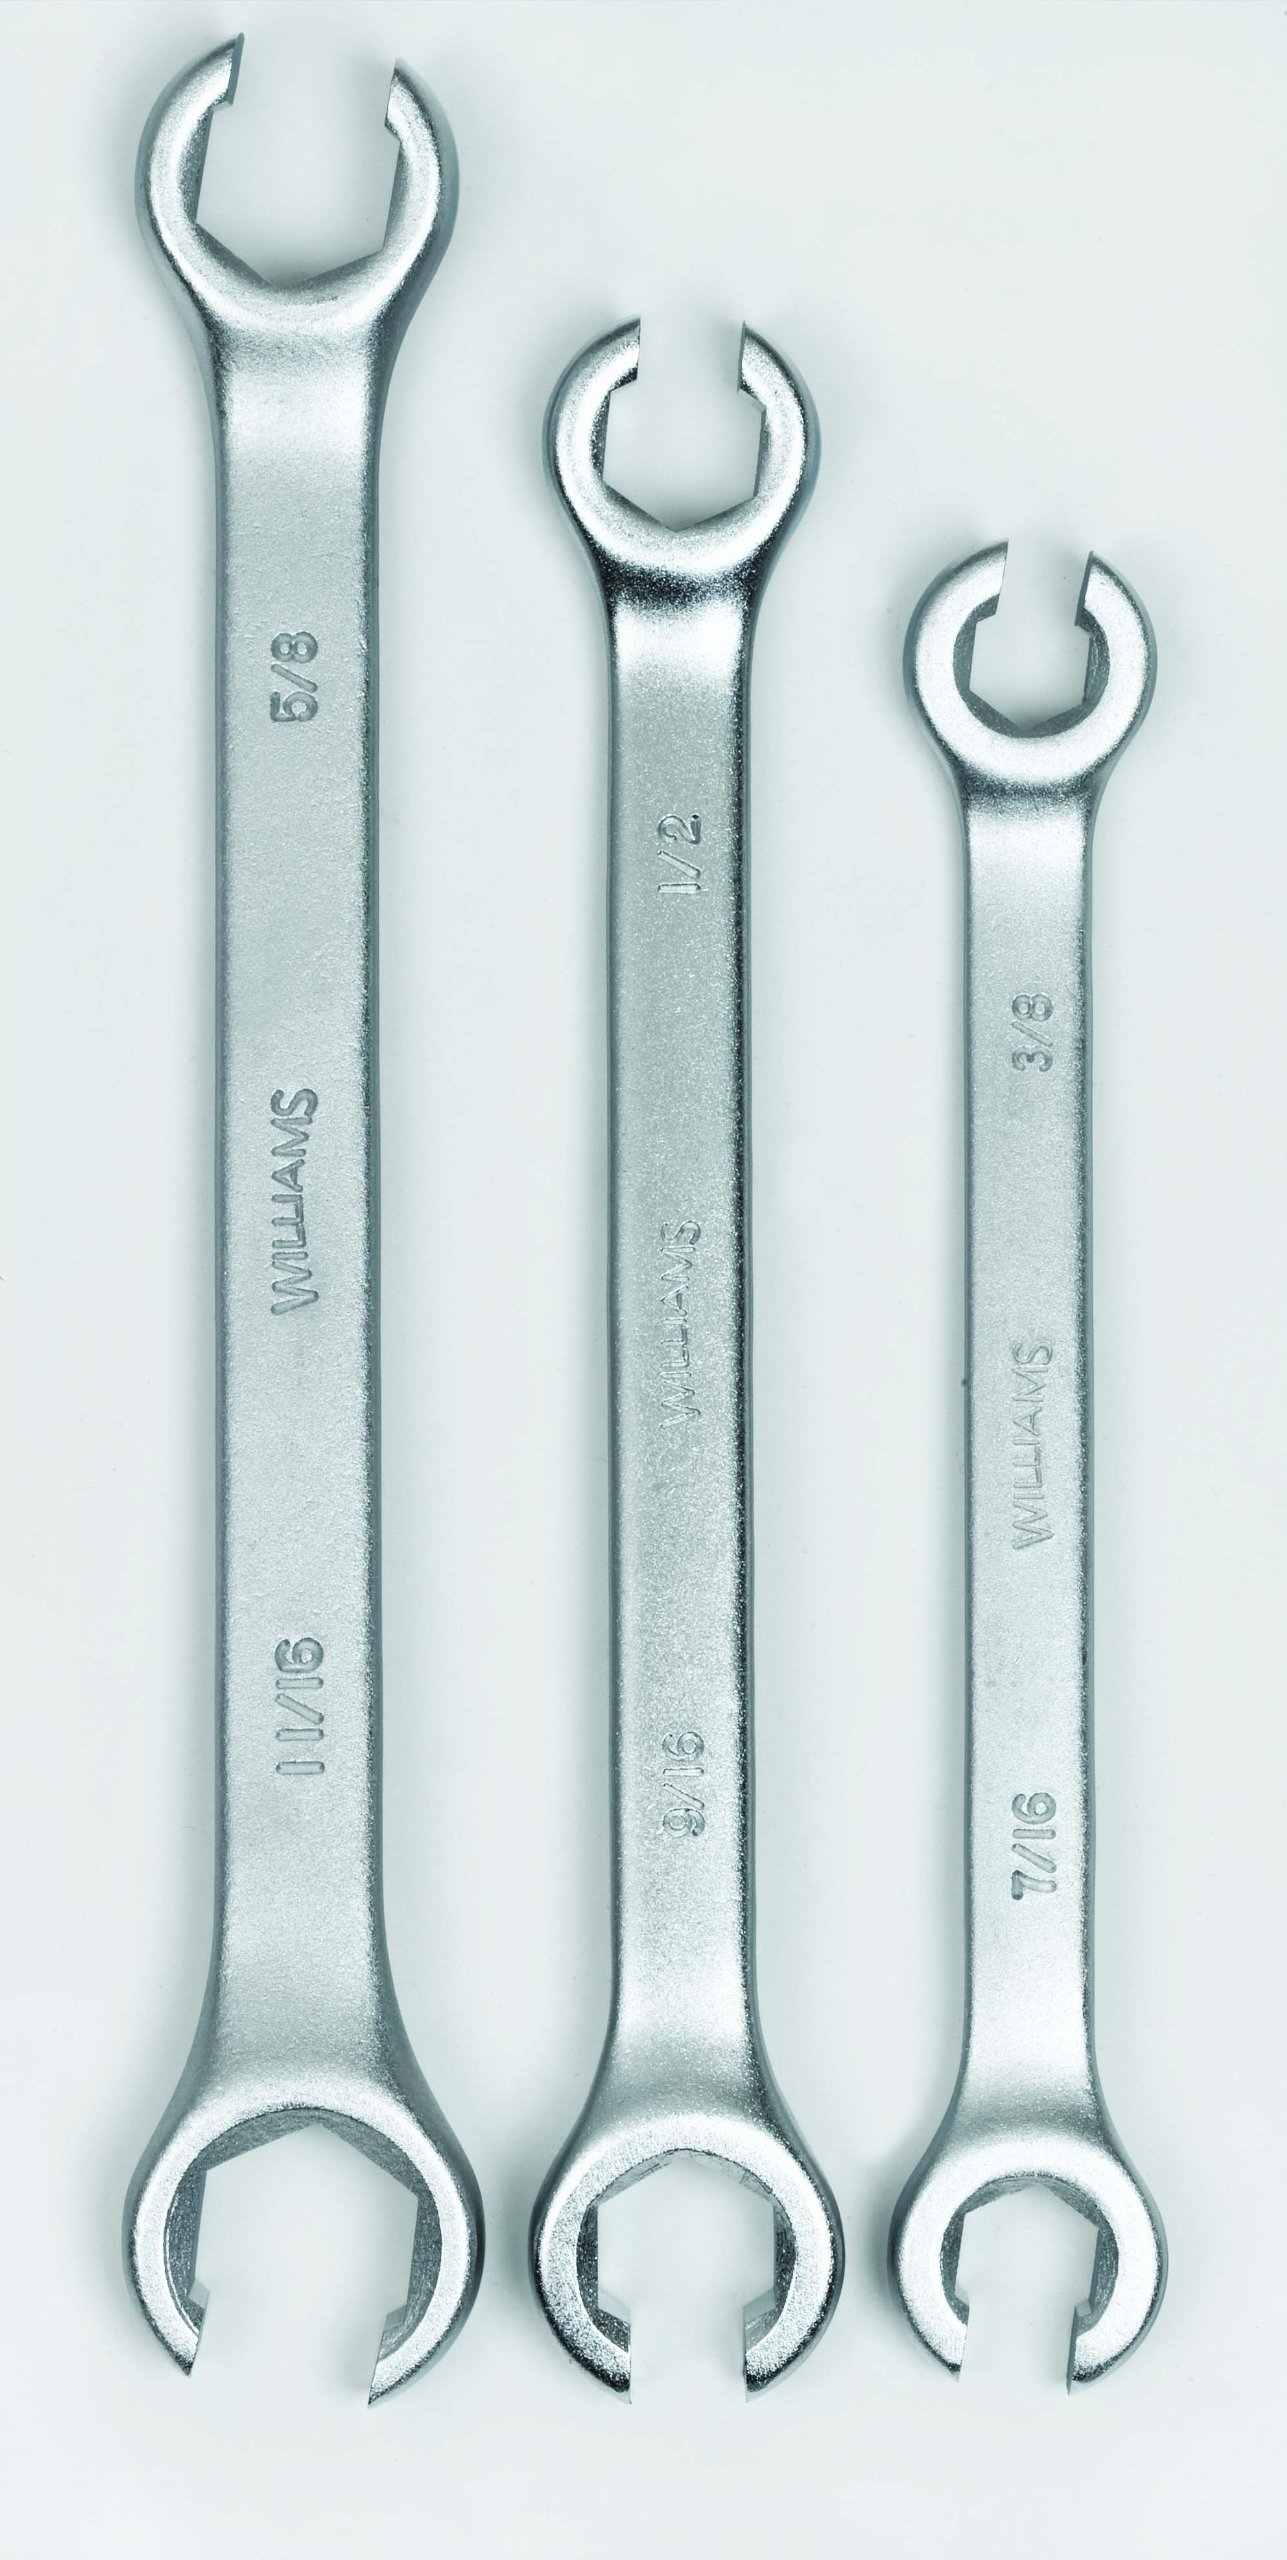 Williams 11691 3-Piece Double Head Flare Nut Wrench Set